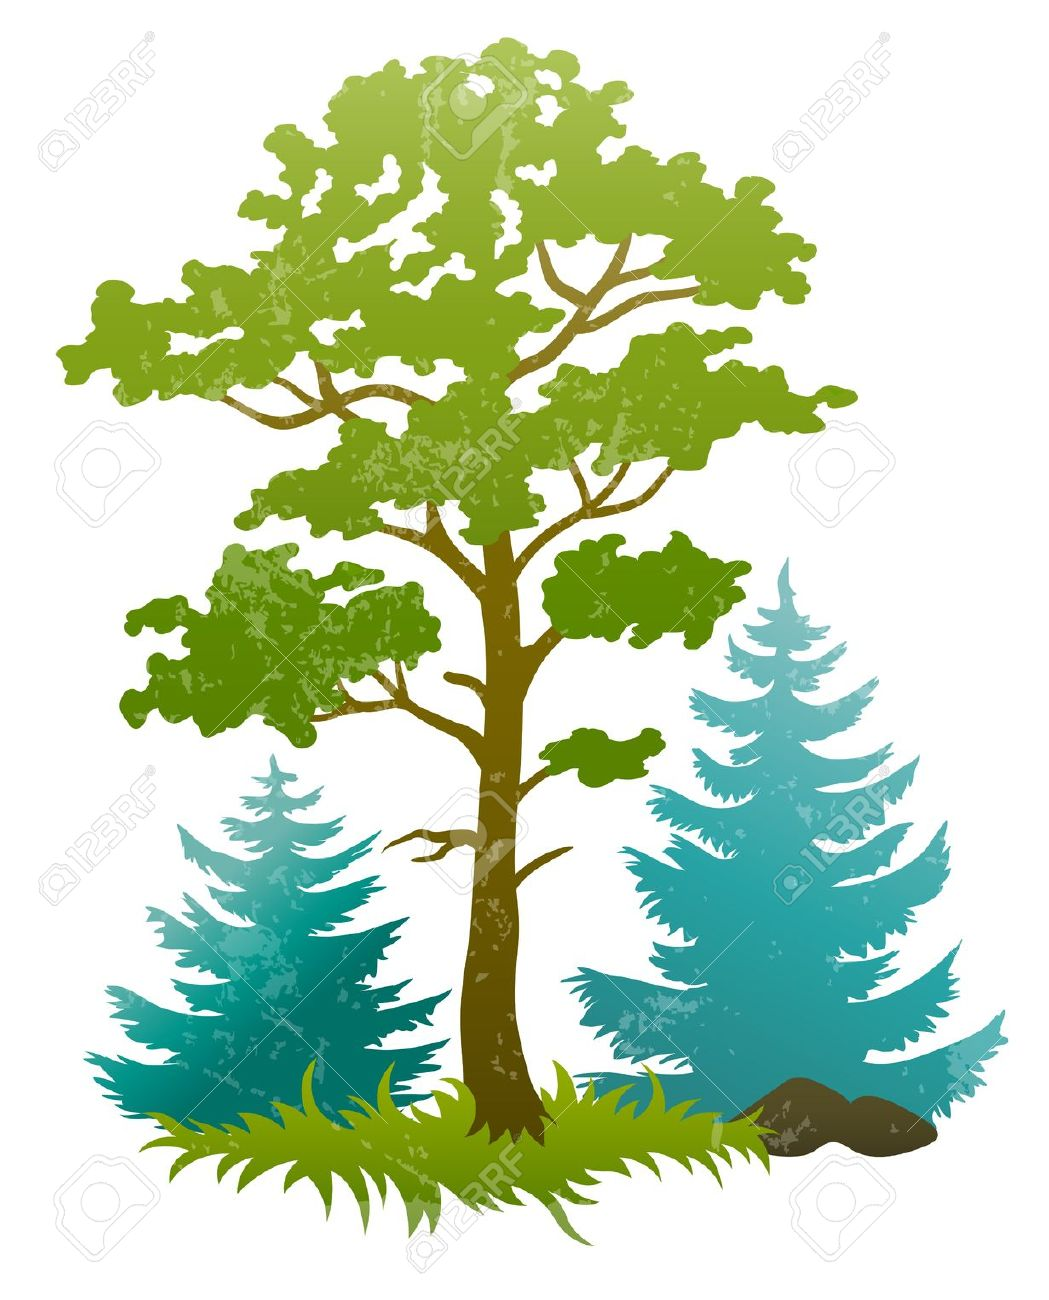 Silhouette of at getdrawings. Bush clipart forest